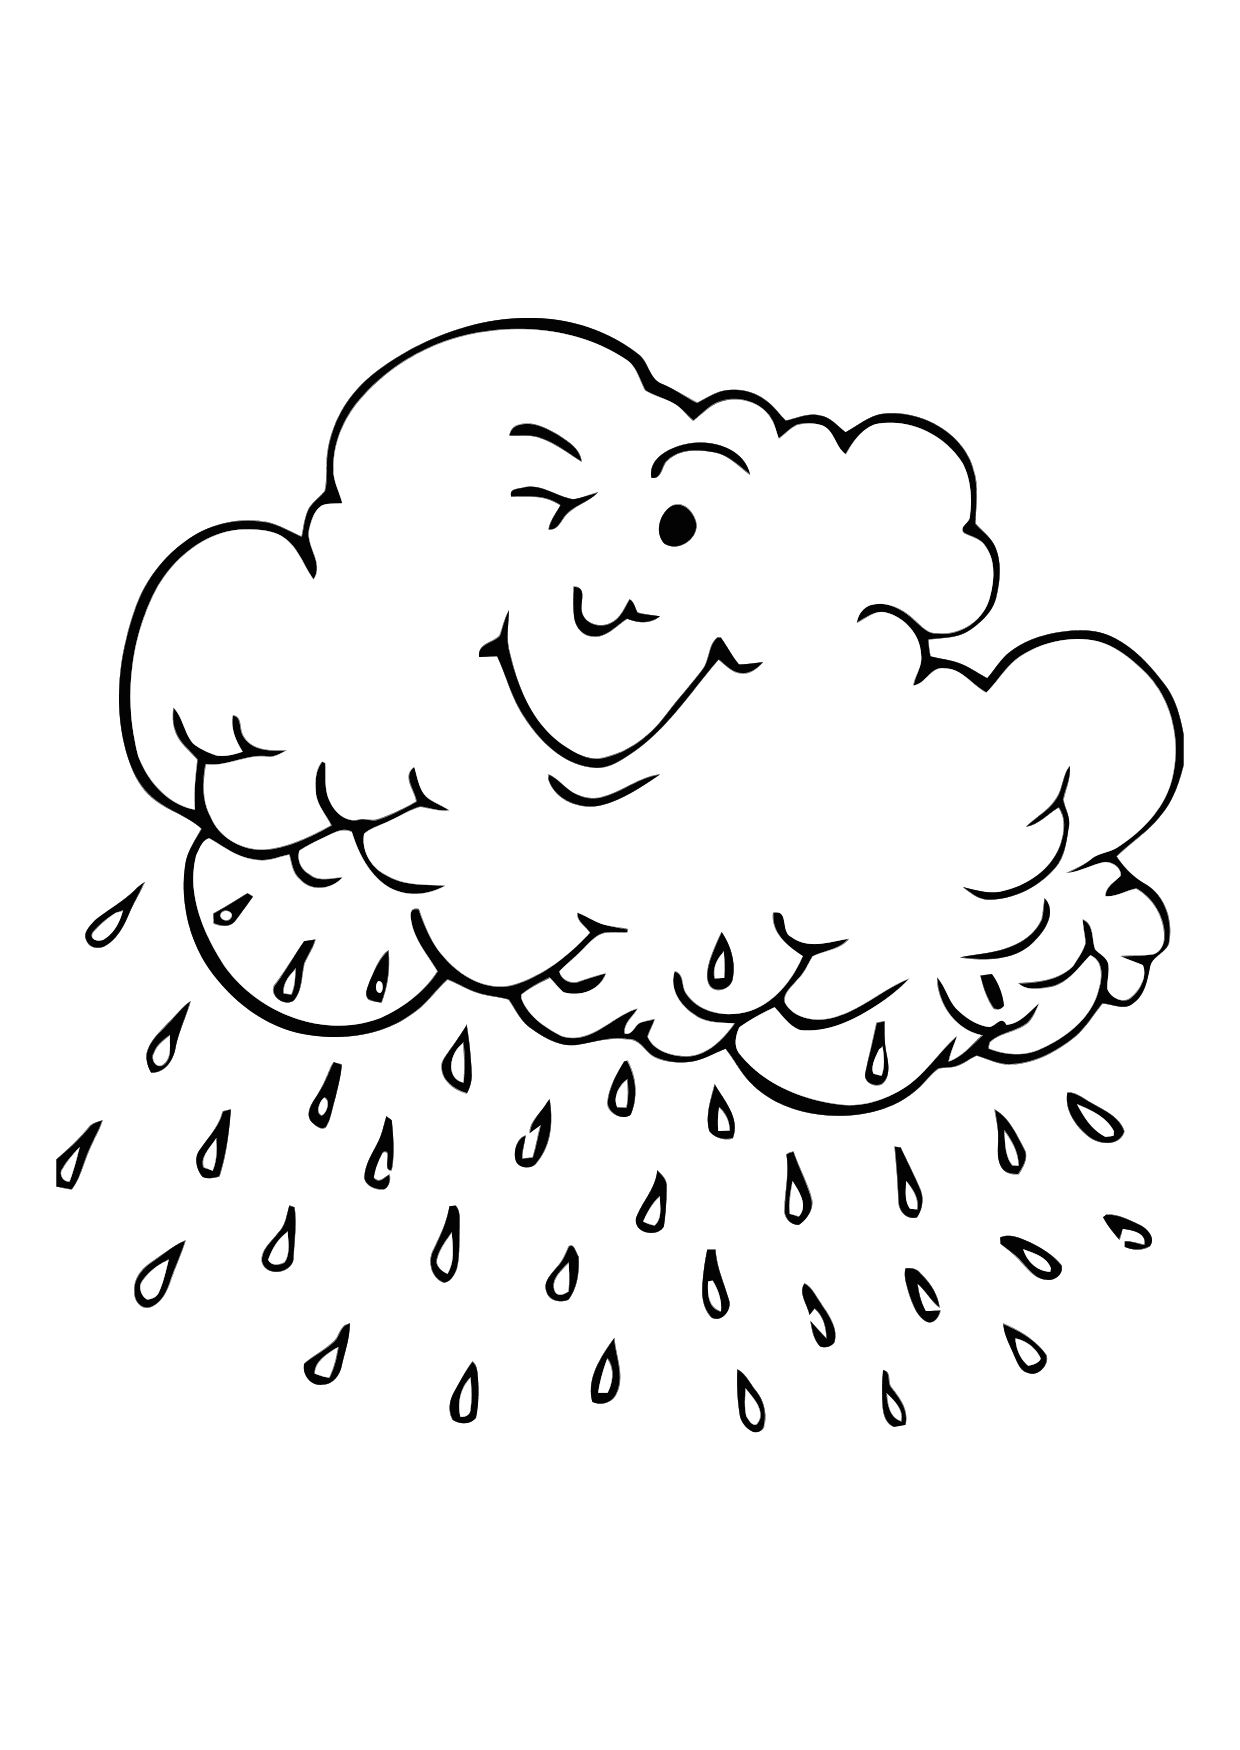 Cloud Coloring Pages | Moon coloring pages, Cute coloring pages ... | 1750x1240